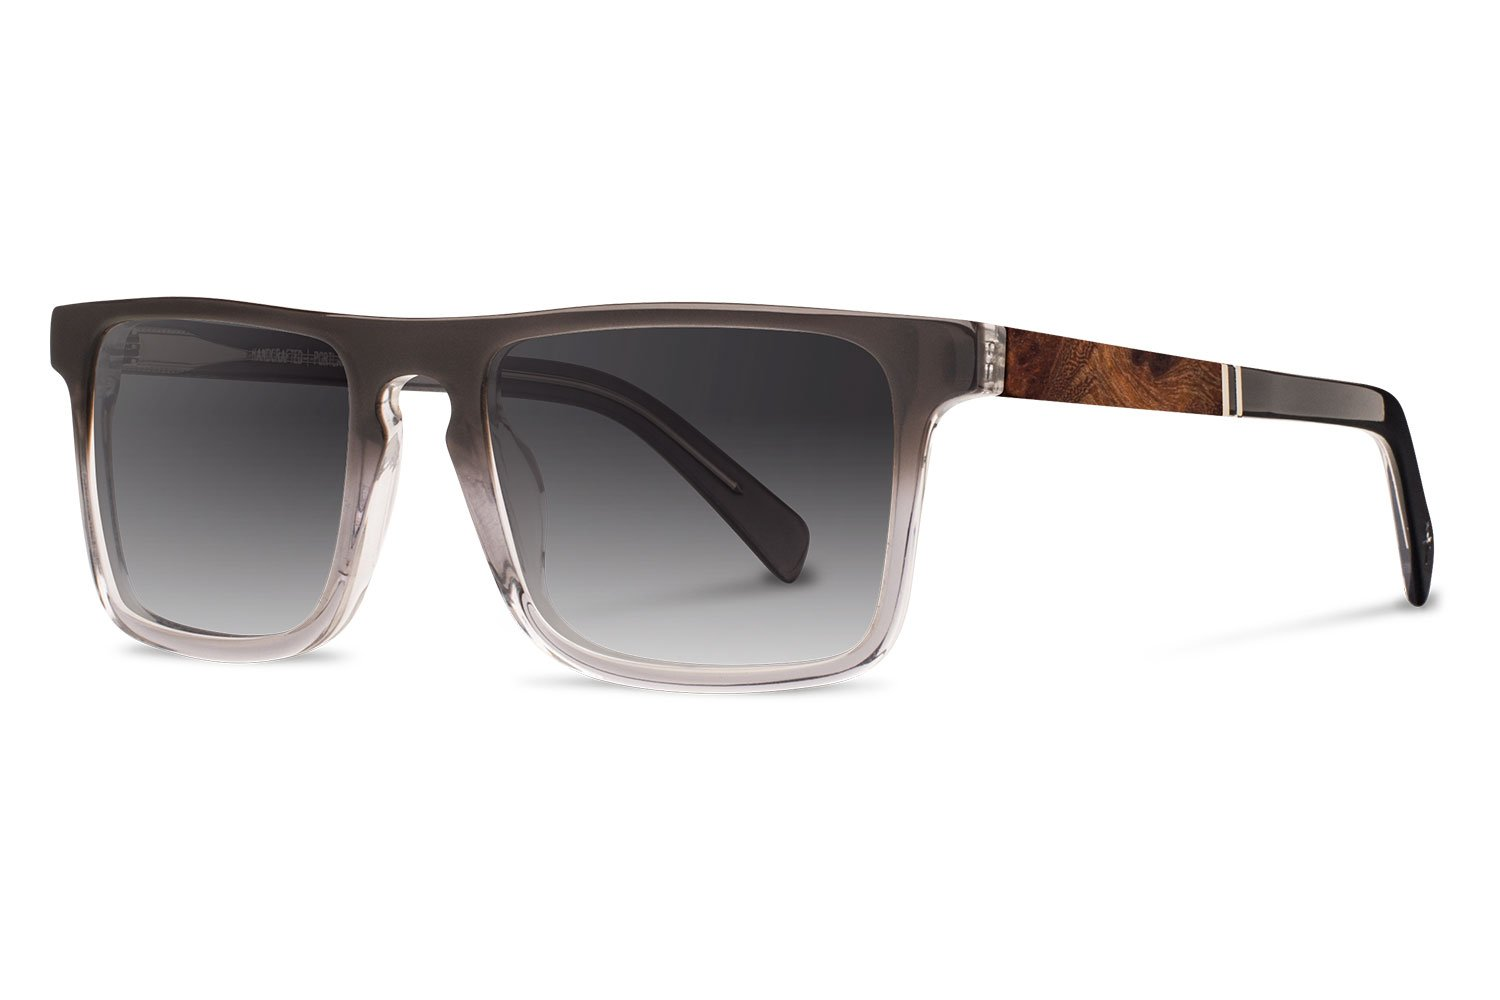 Shwood - Govy 2 Acetate, Sustainability Meets Style, Fog with Elm Burl Inlay, Grey Fade Polarized Lenses